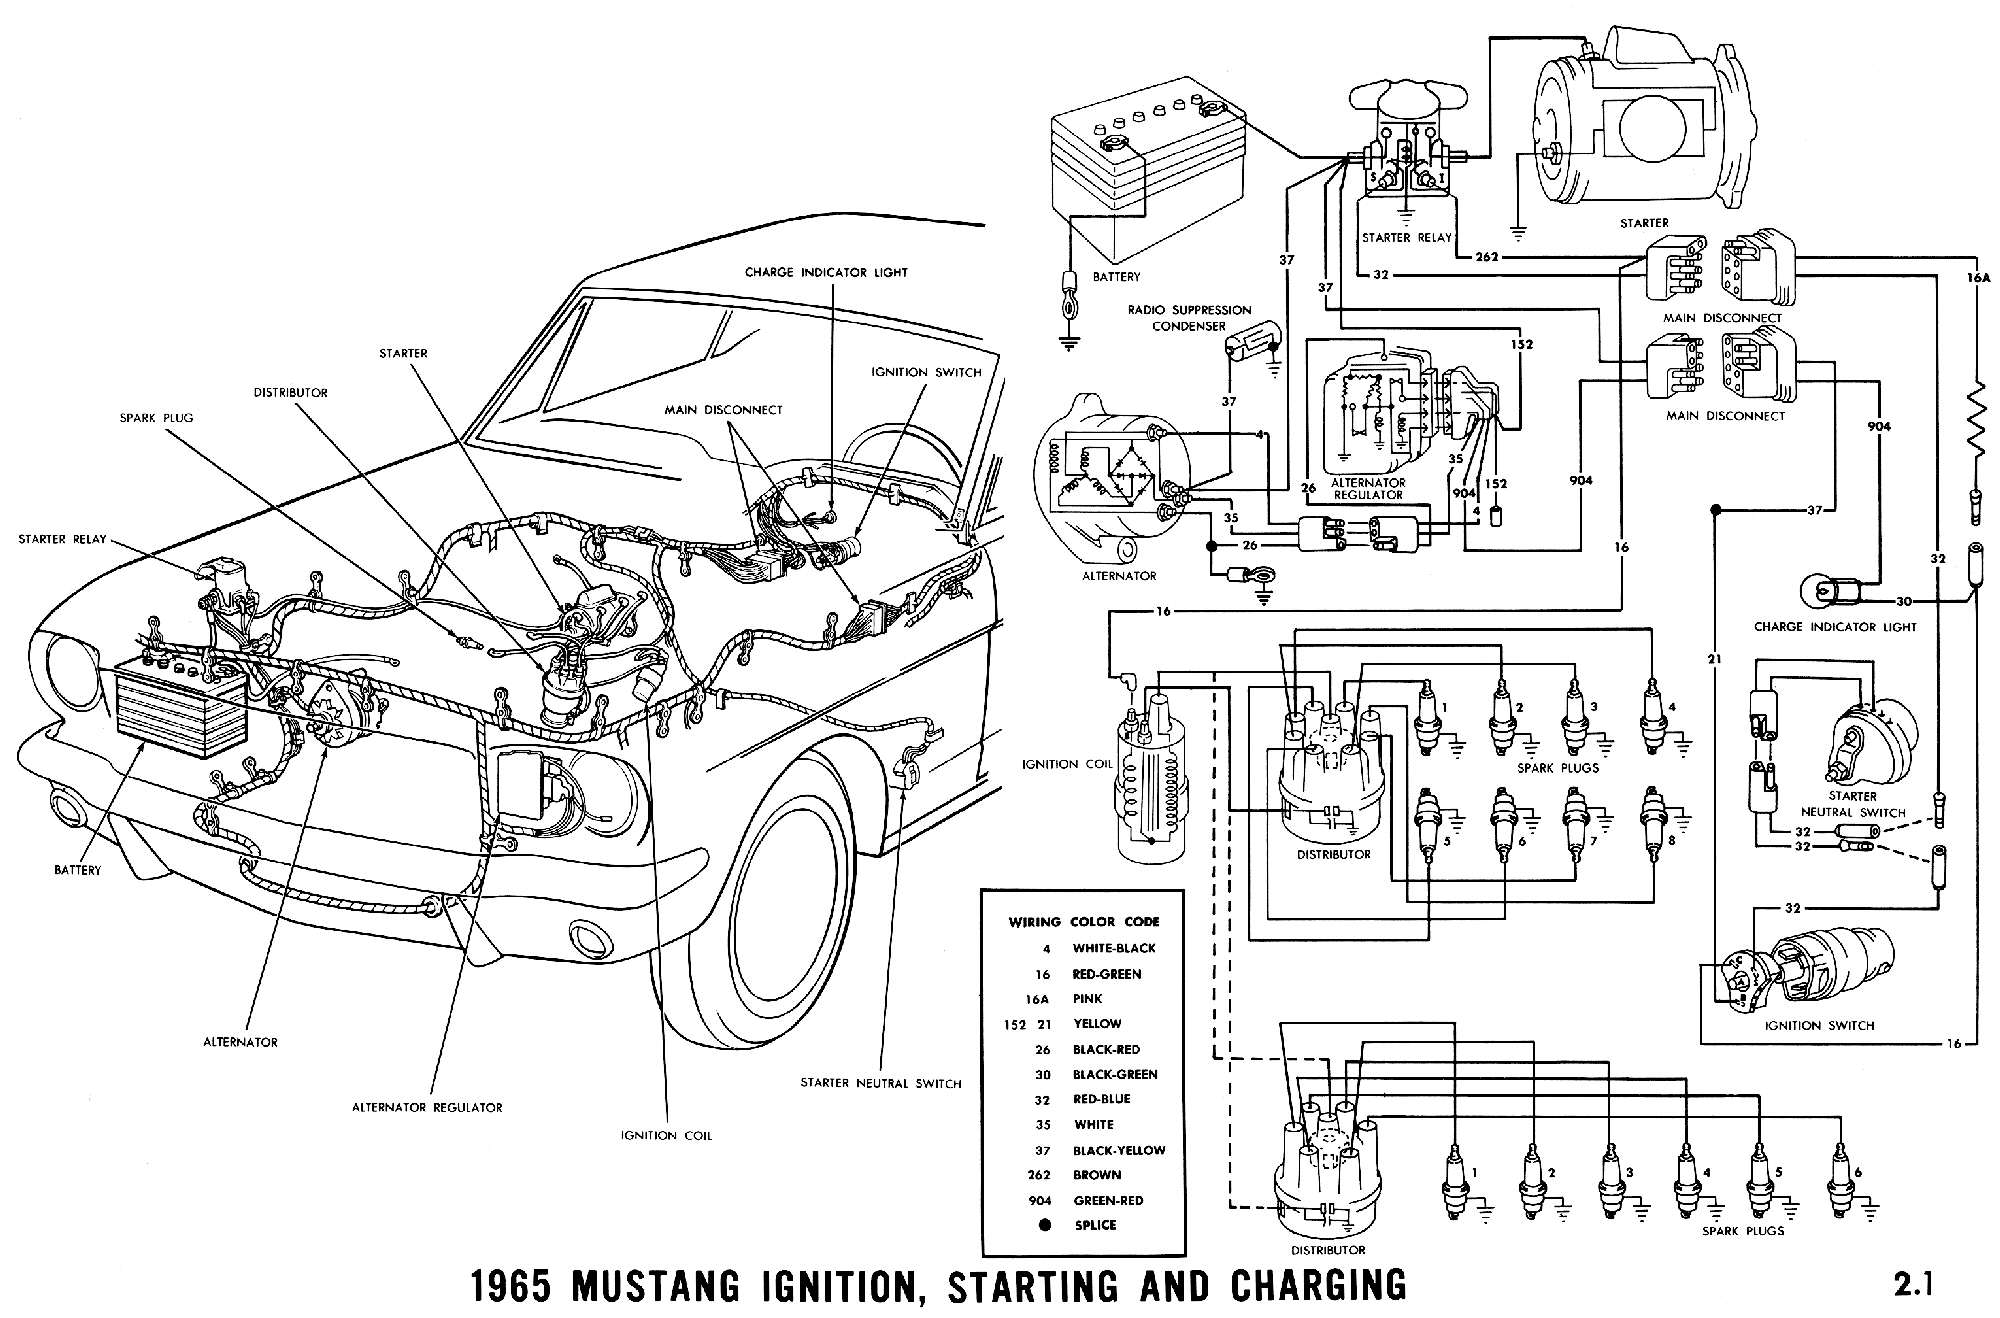 1965 mustang wiring diagrams average joe restoration 1965c 1965 mustang ignition